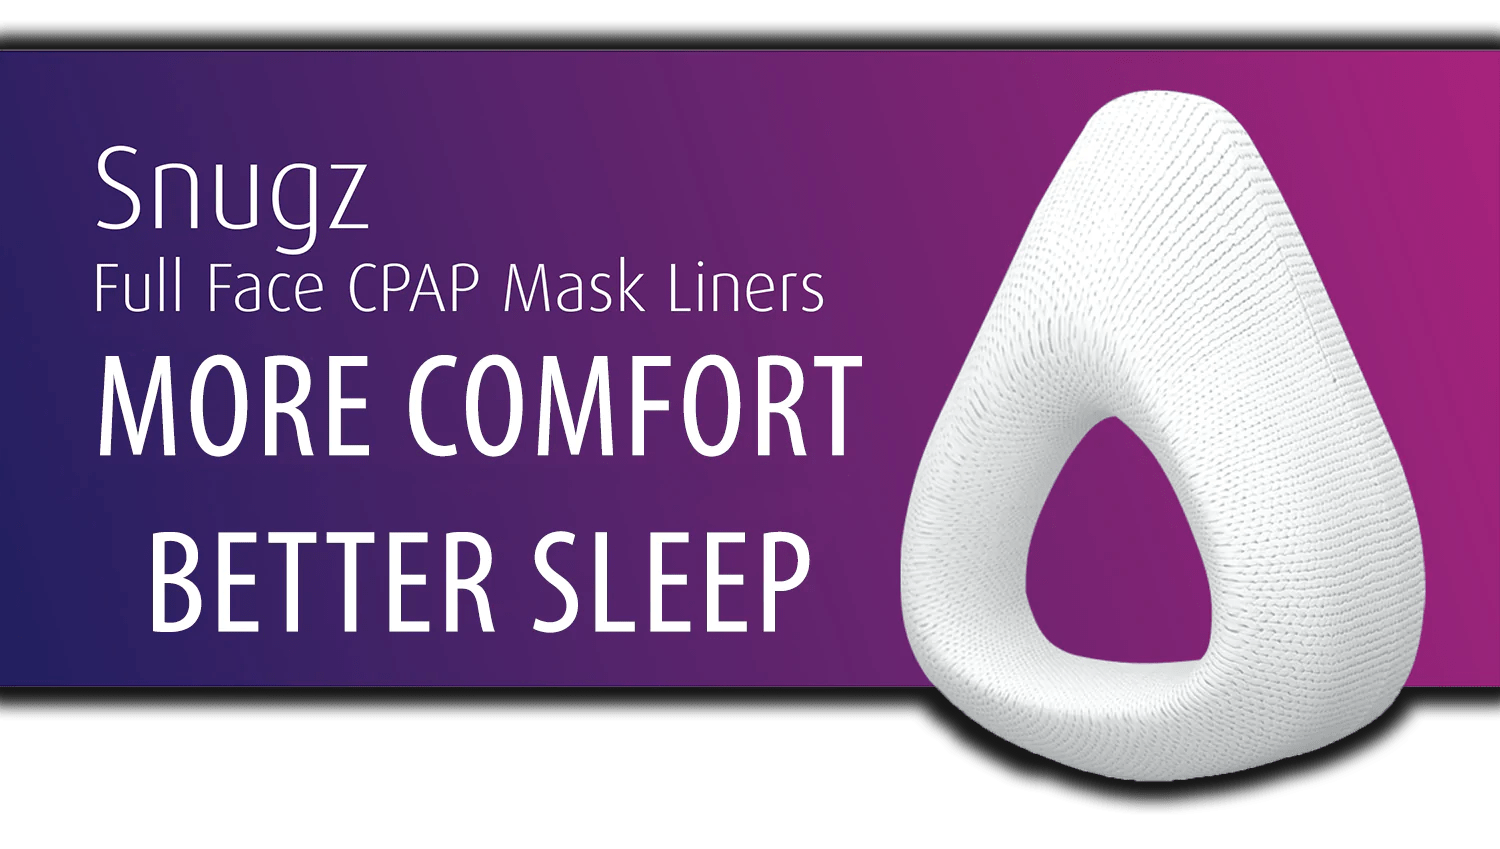 snugz full face cpap mask liners